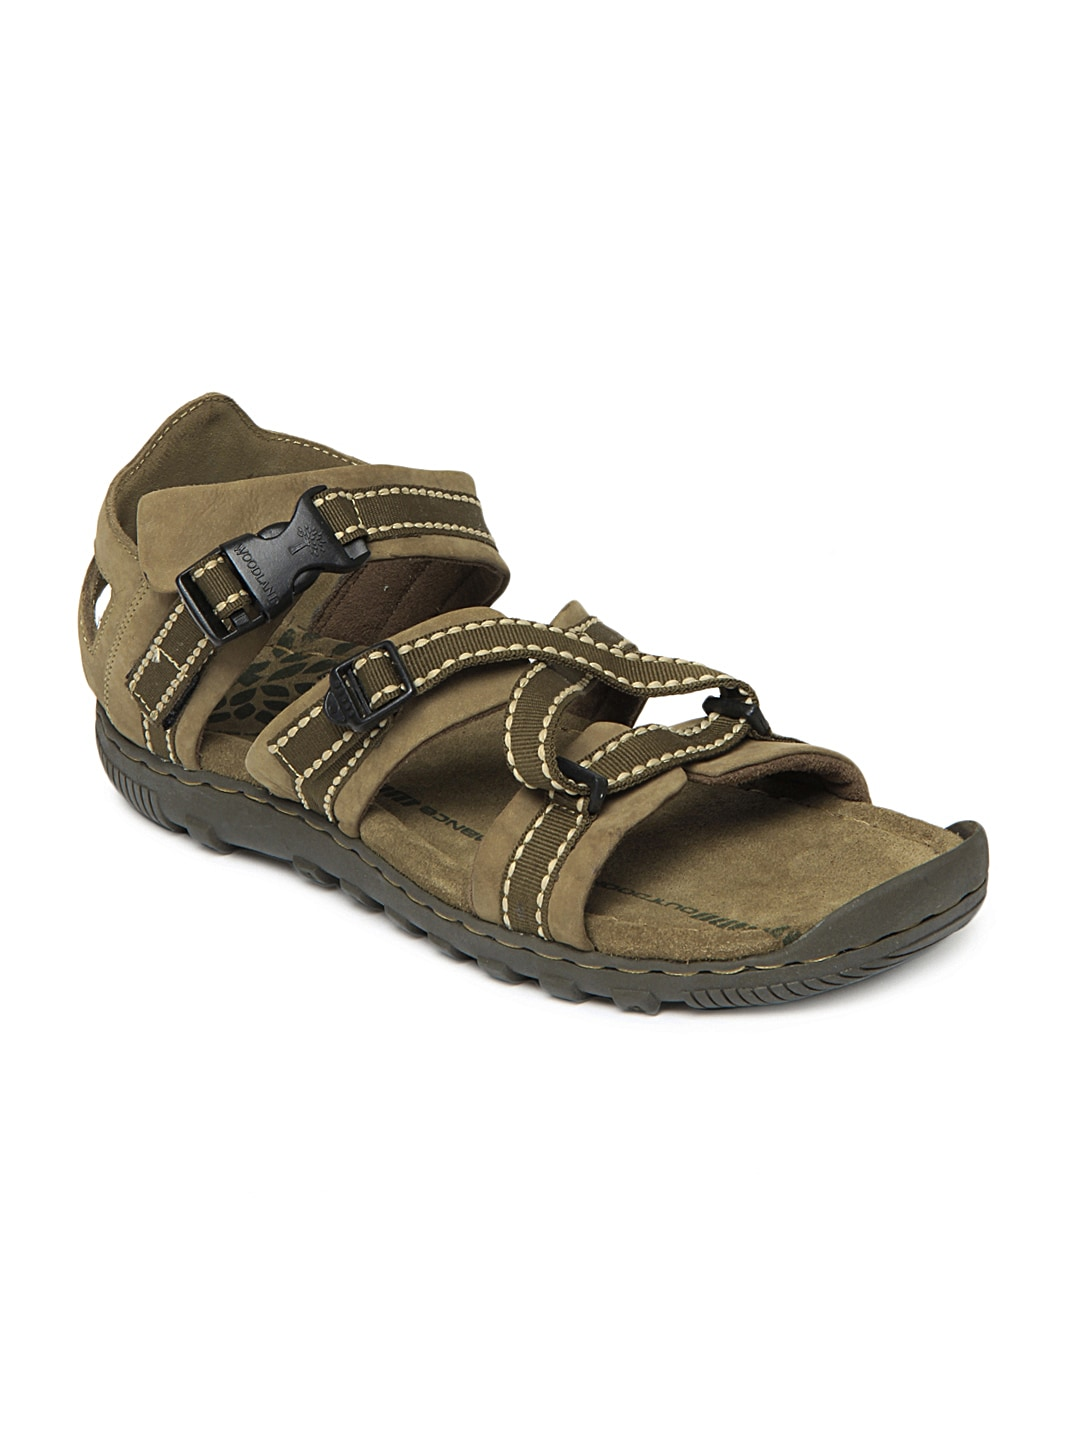 woodland shoes and sandals buy online woodland shoes